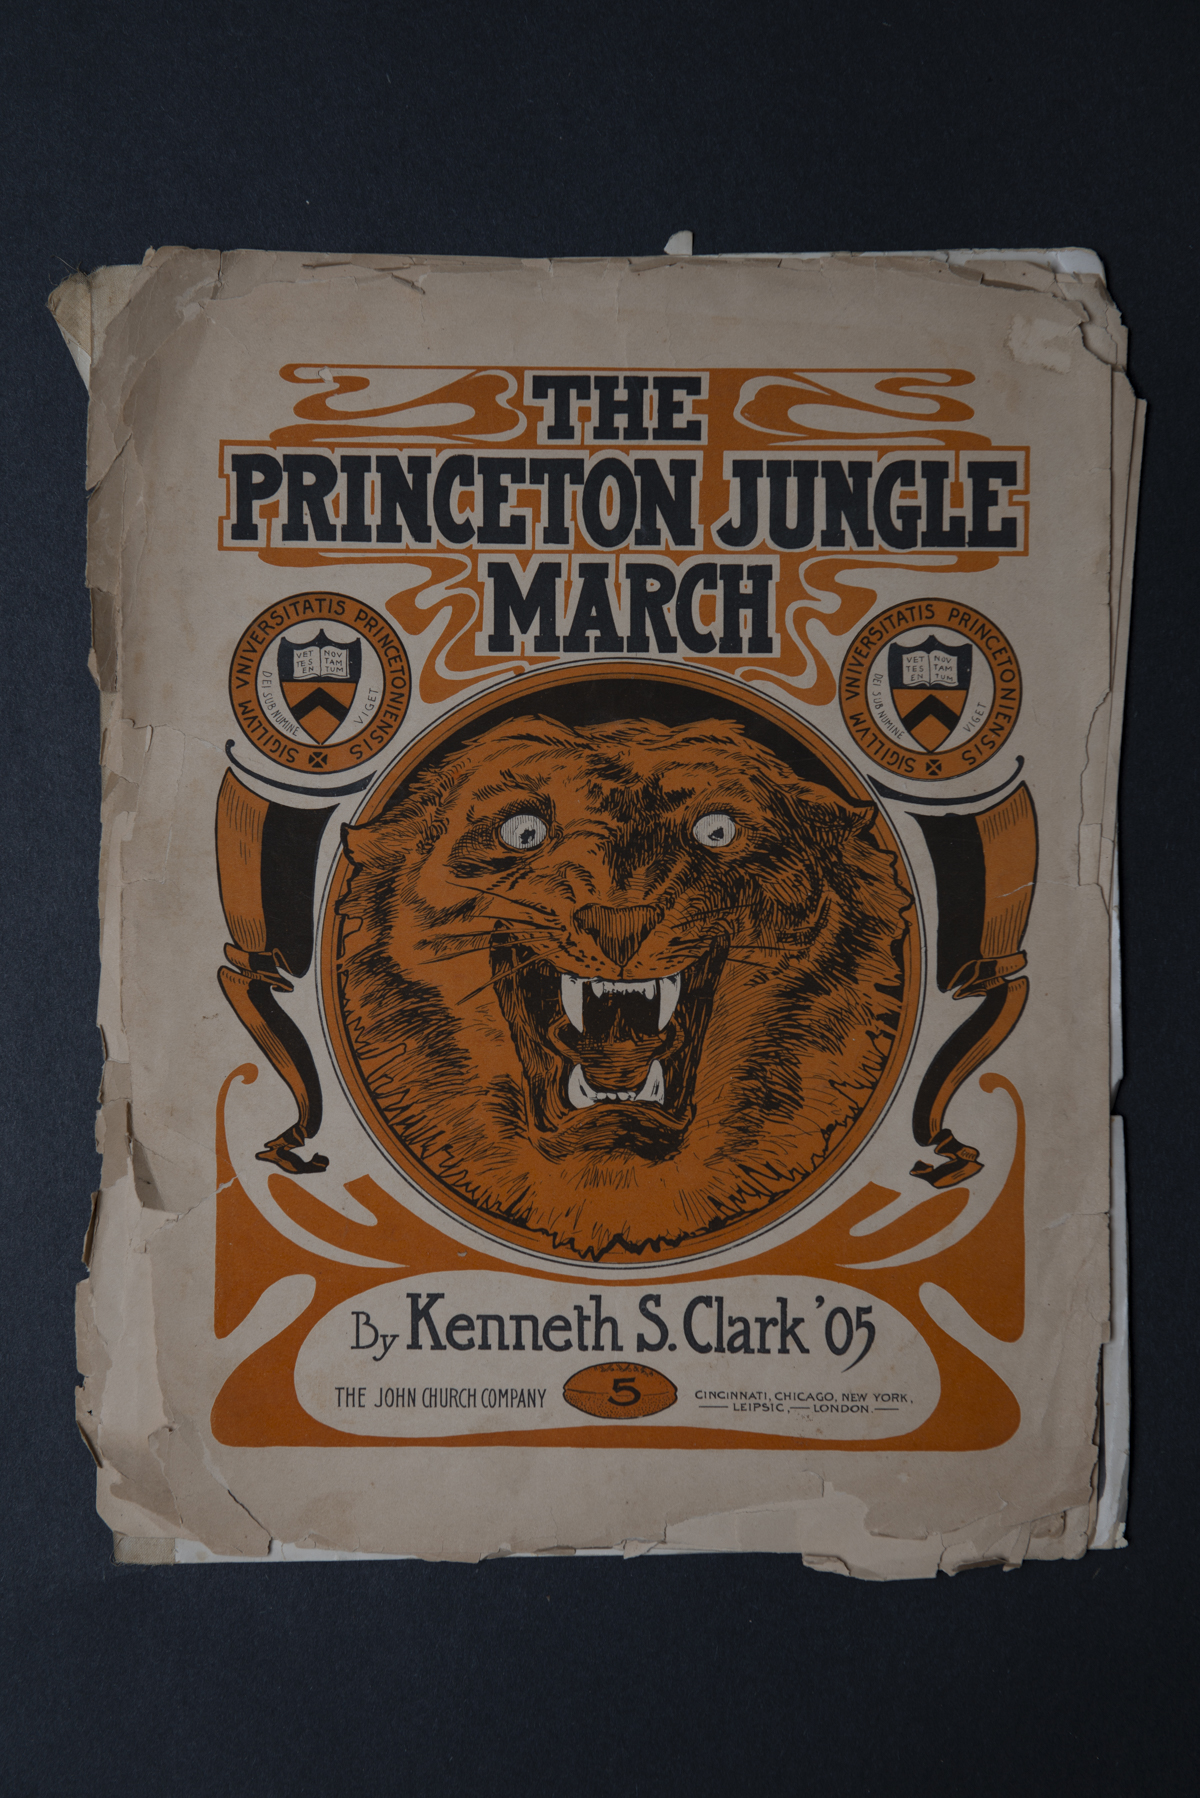 The Princeton Jungle March Score